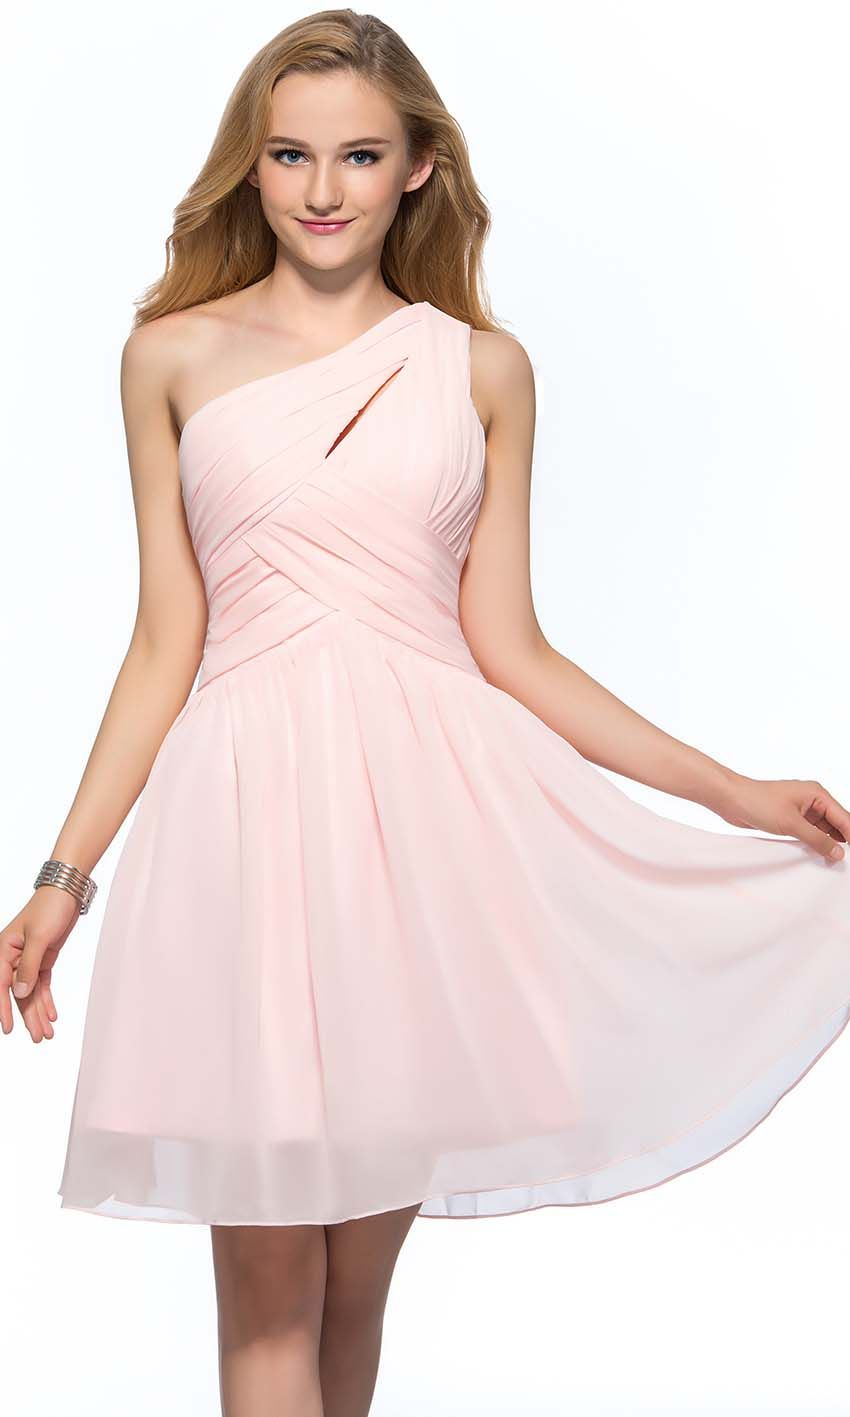 Pink keyhole one shoulder short bridesmaid dress uk ksp388 pink keyhole one shoulder short bridesmaid dress uk ksp388 ombrellifo Image collections